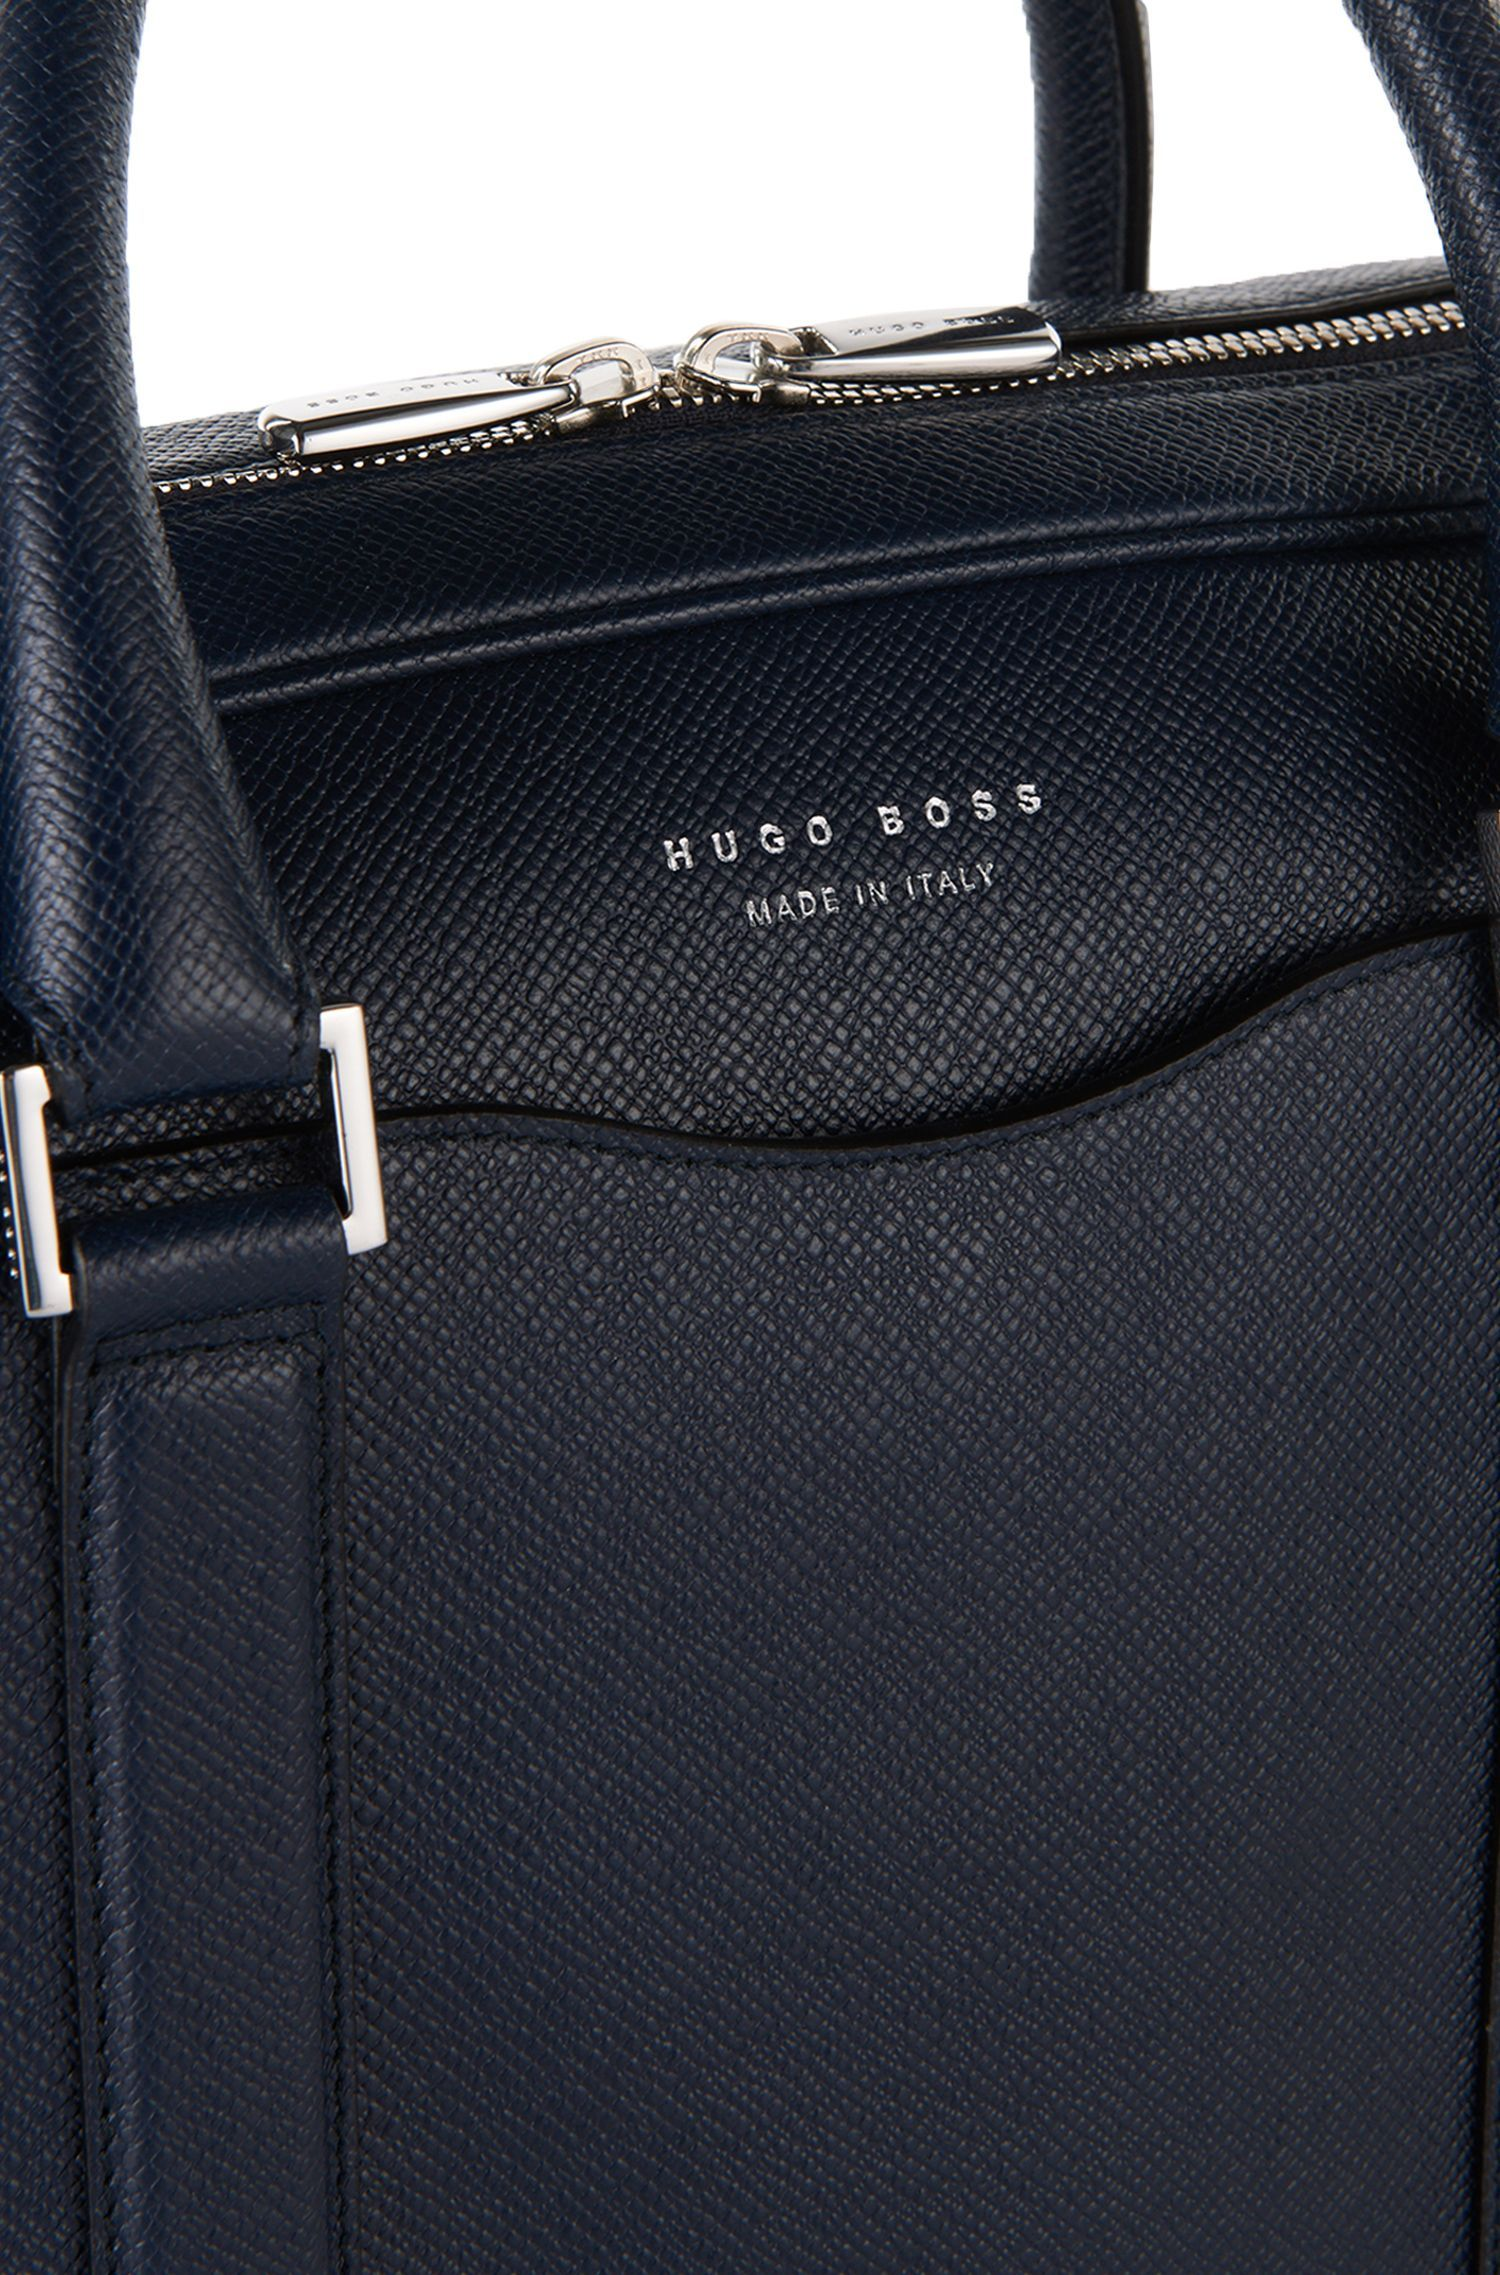 3e12ba39d0 Laptop bag in finely-textured leather   Signature S doc